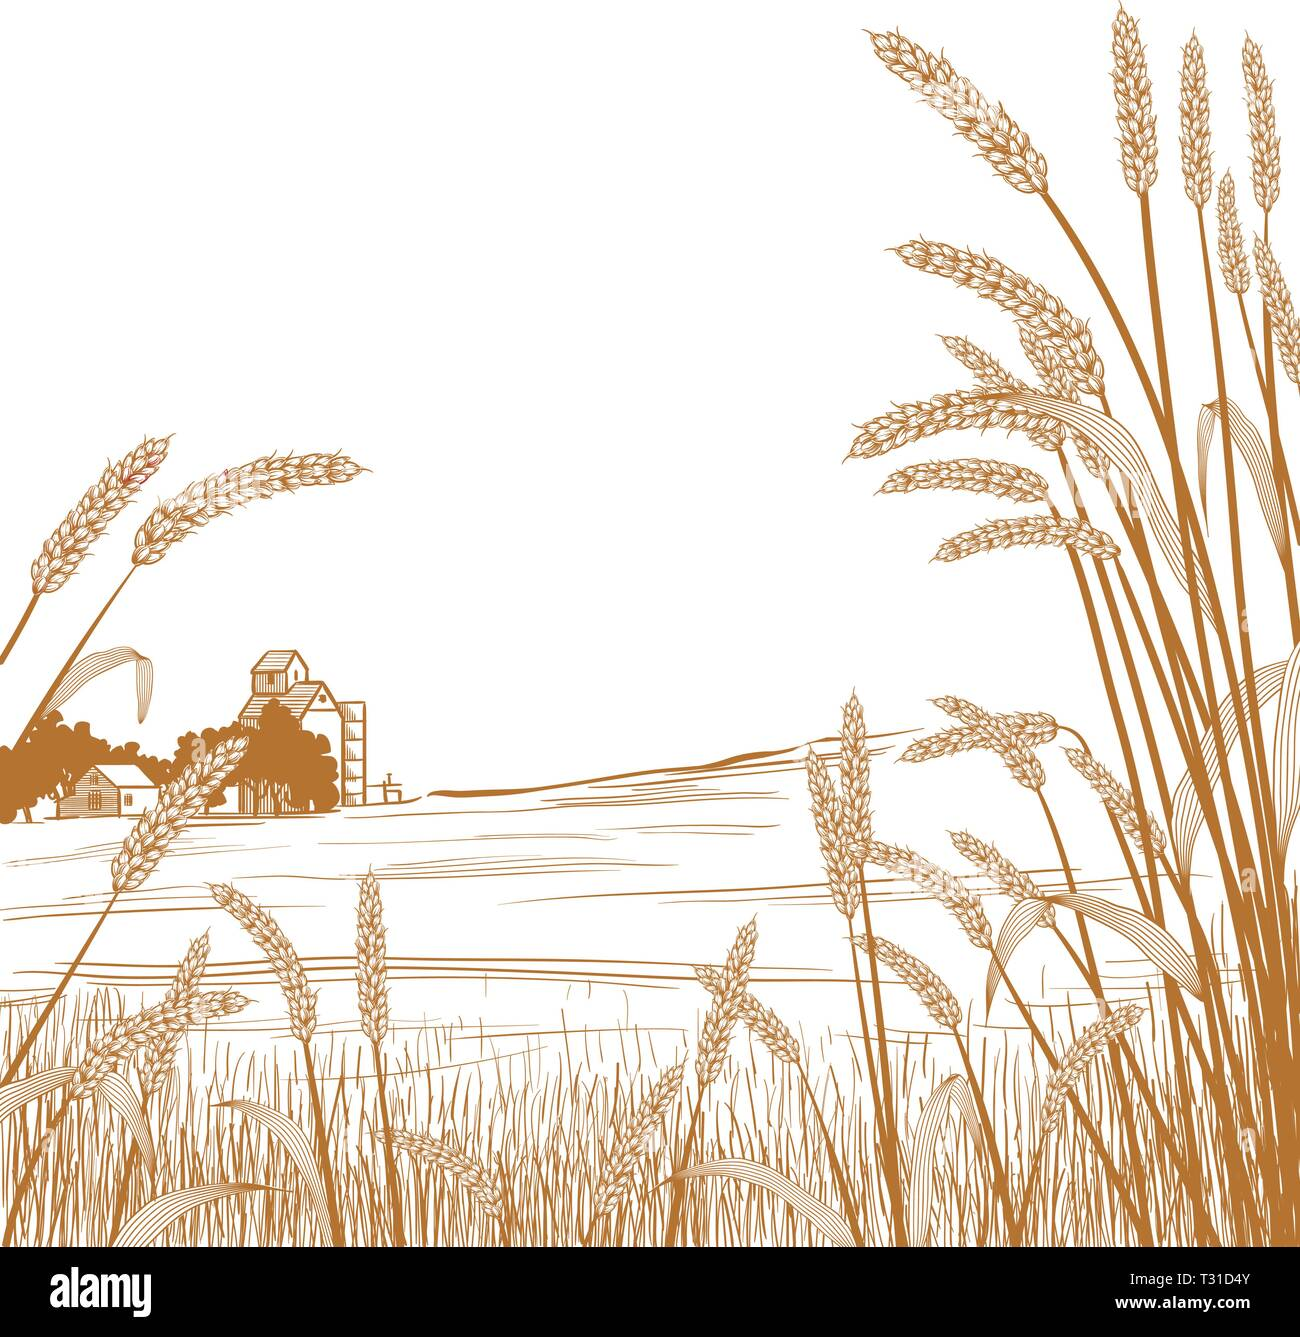 View of across a wheat field at a farm and silo with wheat grass strands framing the scene in the foreground - Stock Vector